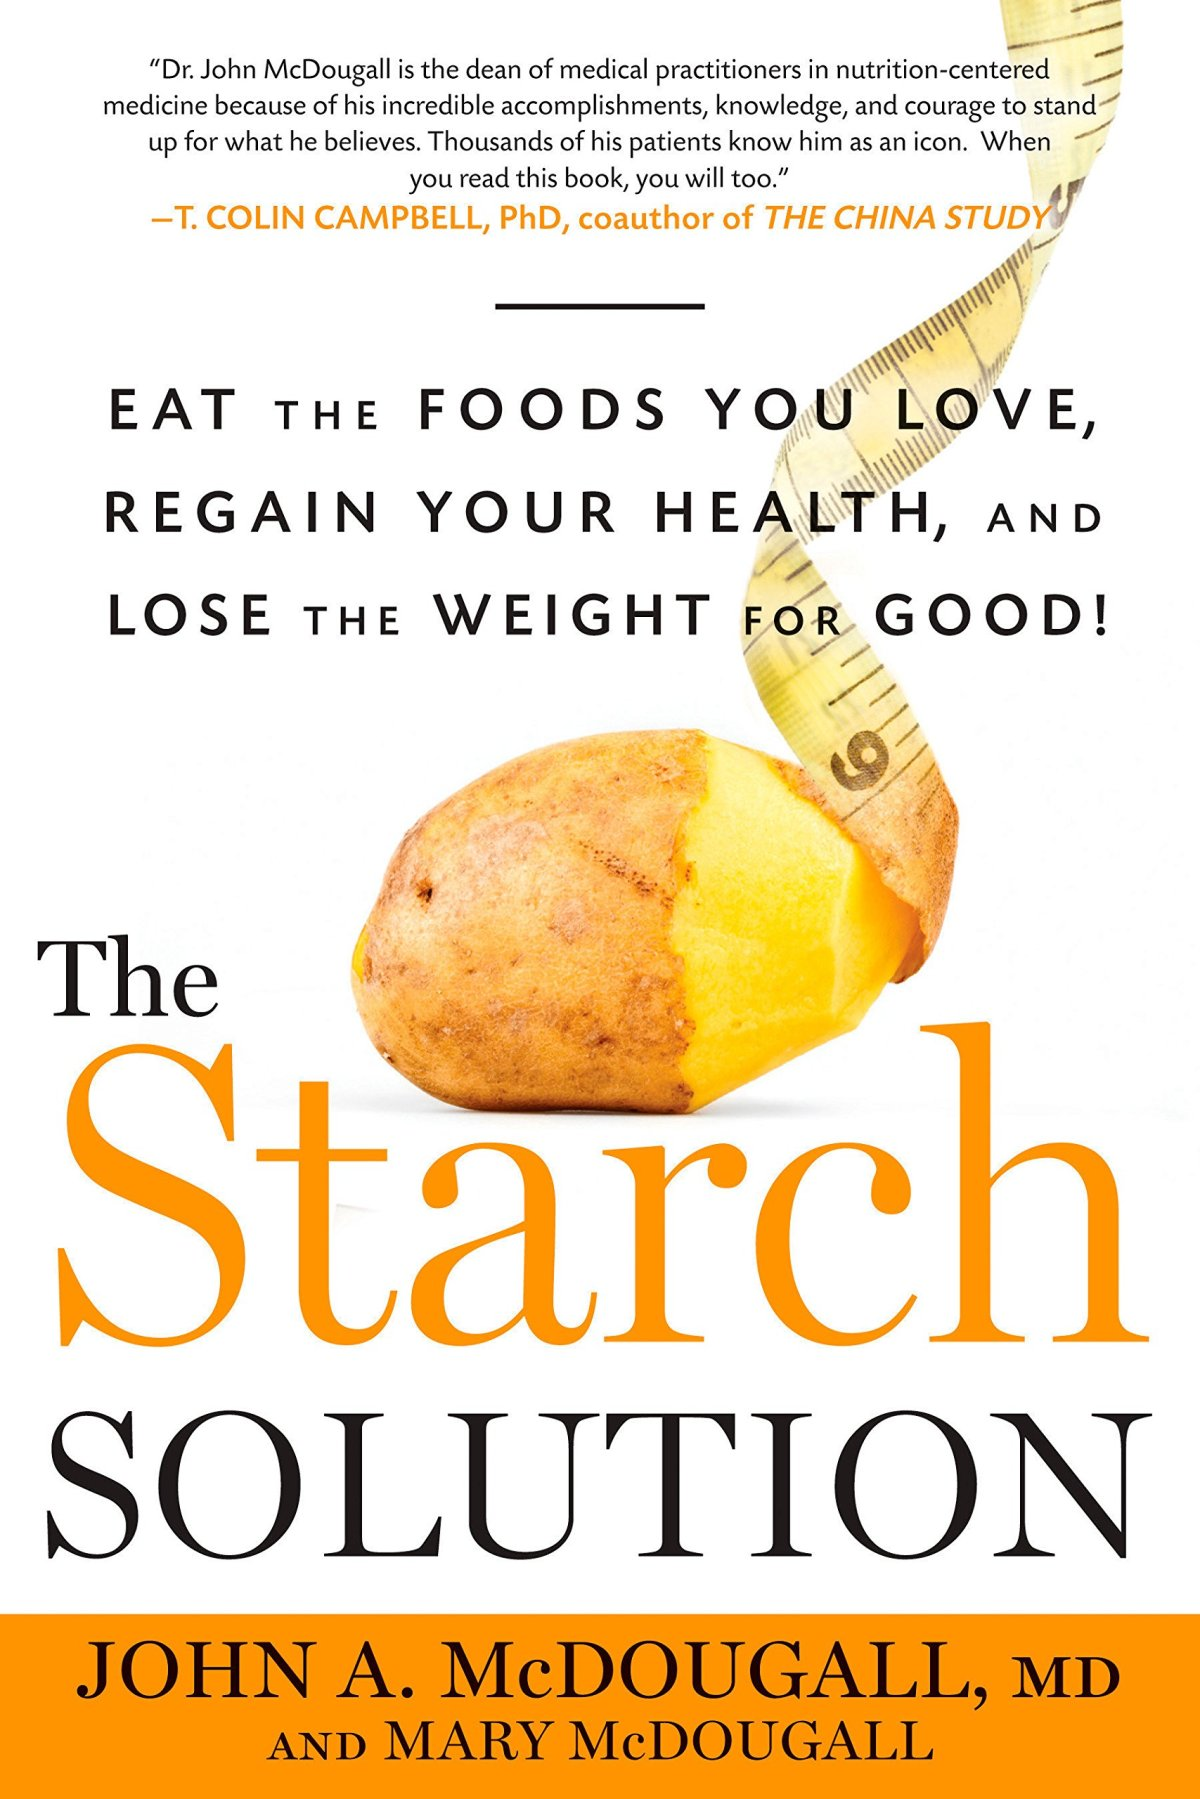 The Starch Solution (Eat the Foods You Love, Regain Your Health, and Lose the Weight for Good!) 1